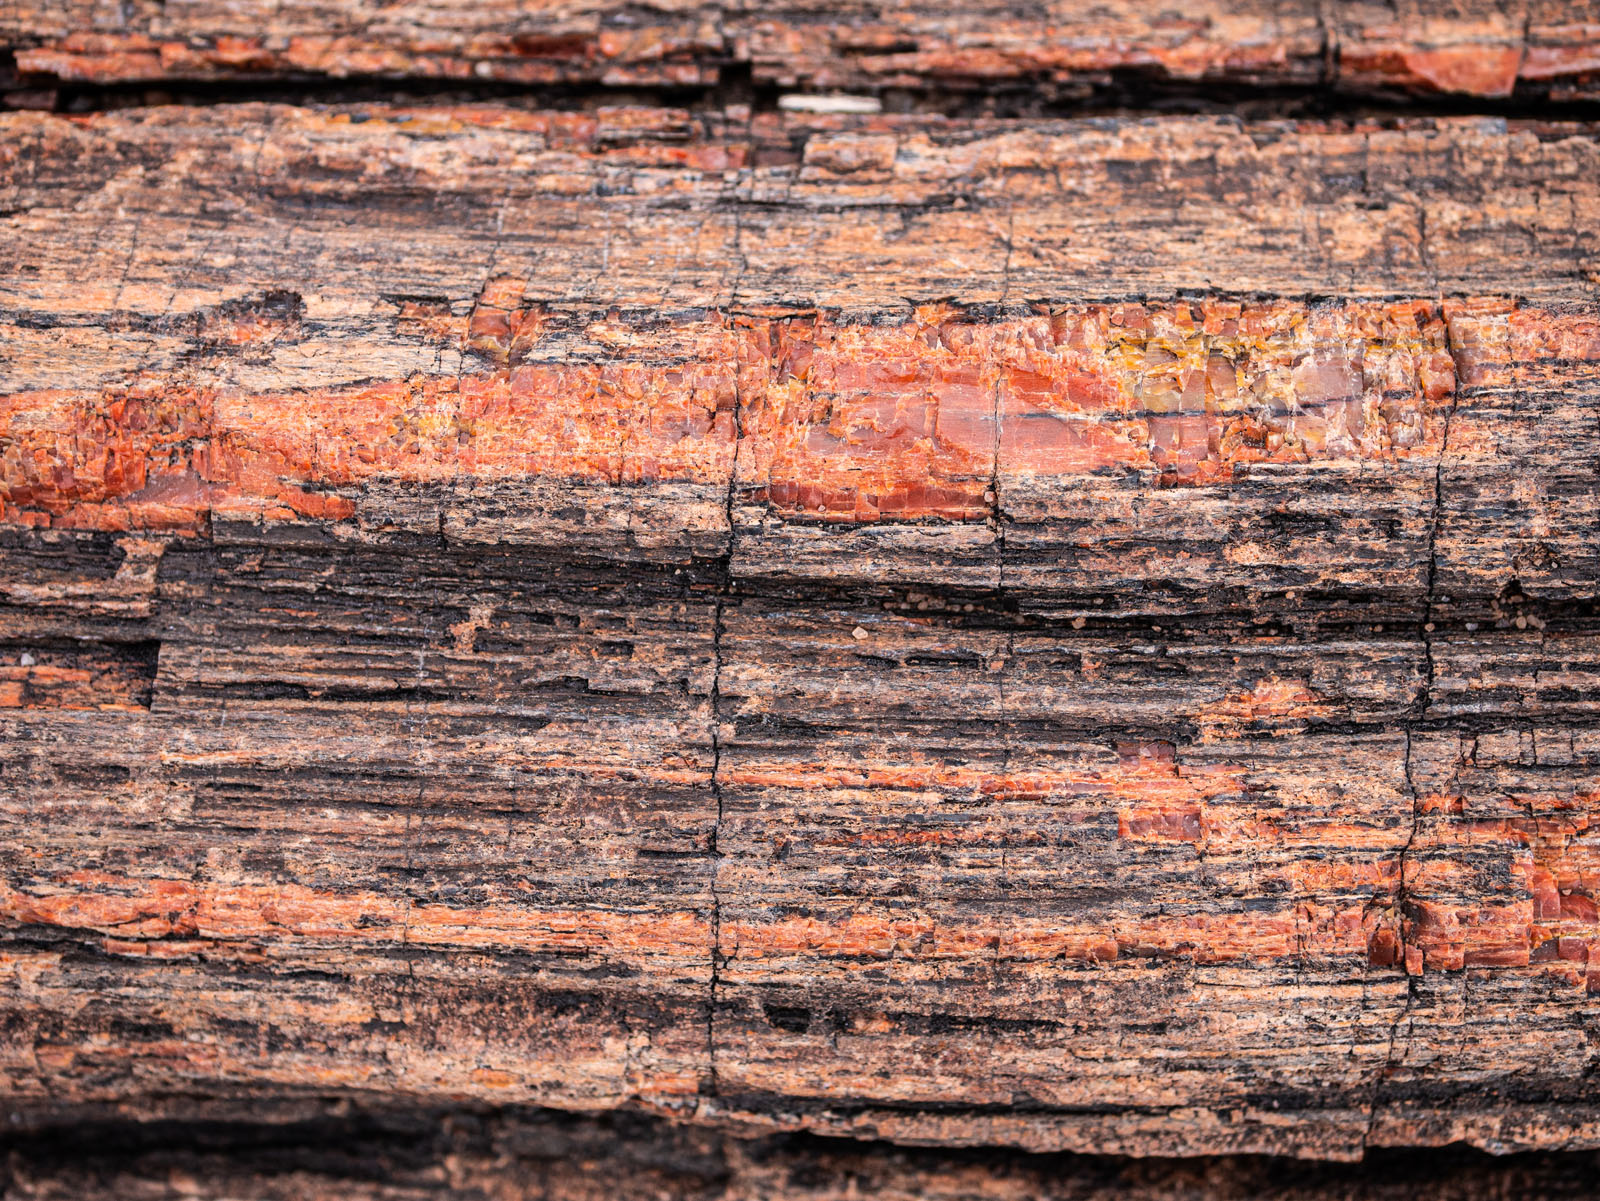 CO_Vacationmoon_PetrifiedWoodMacros-1010501.jpg